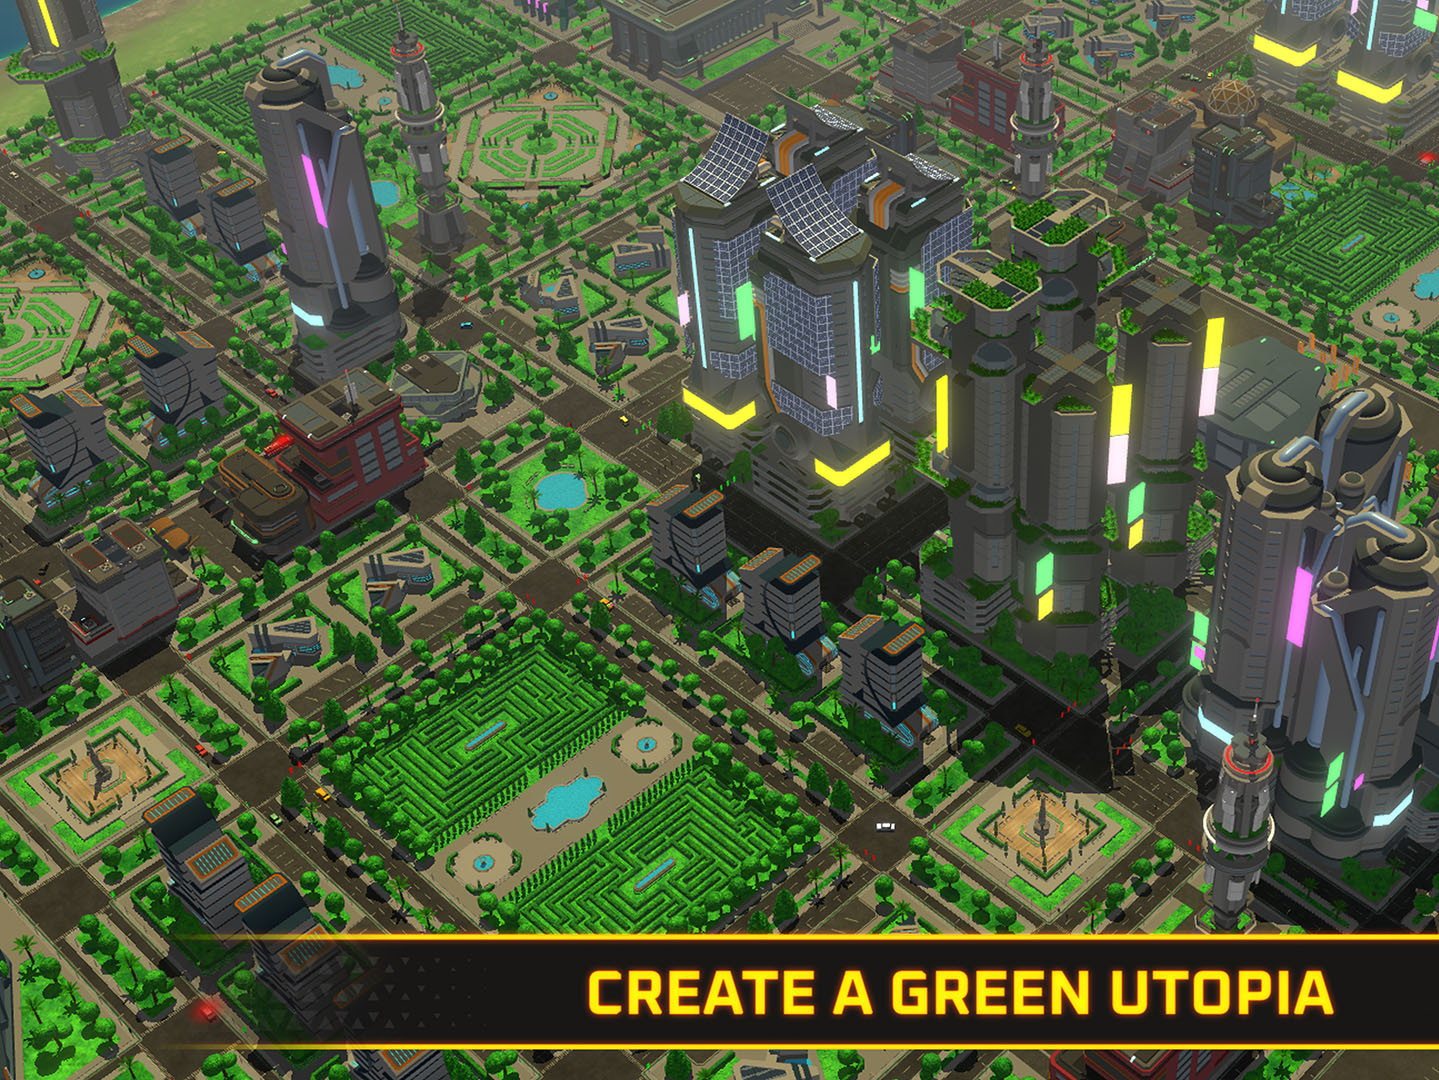 Create a green utopia